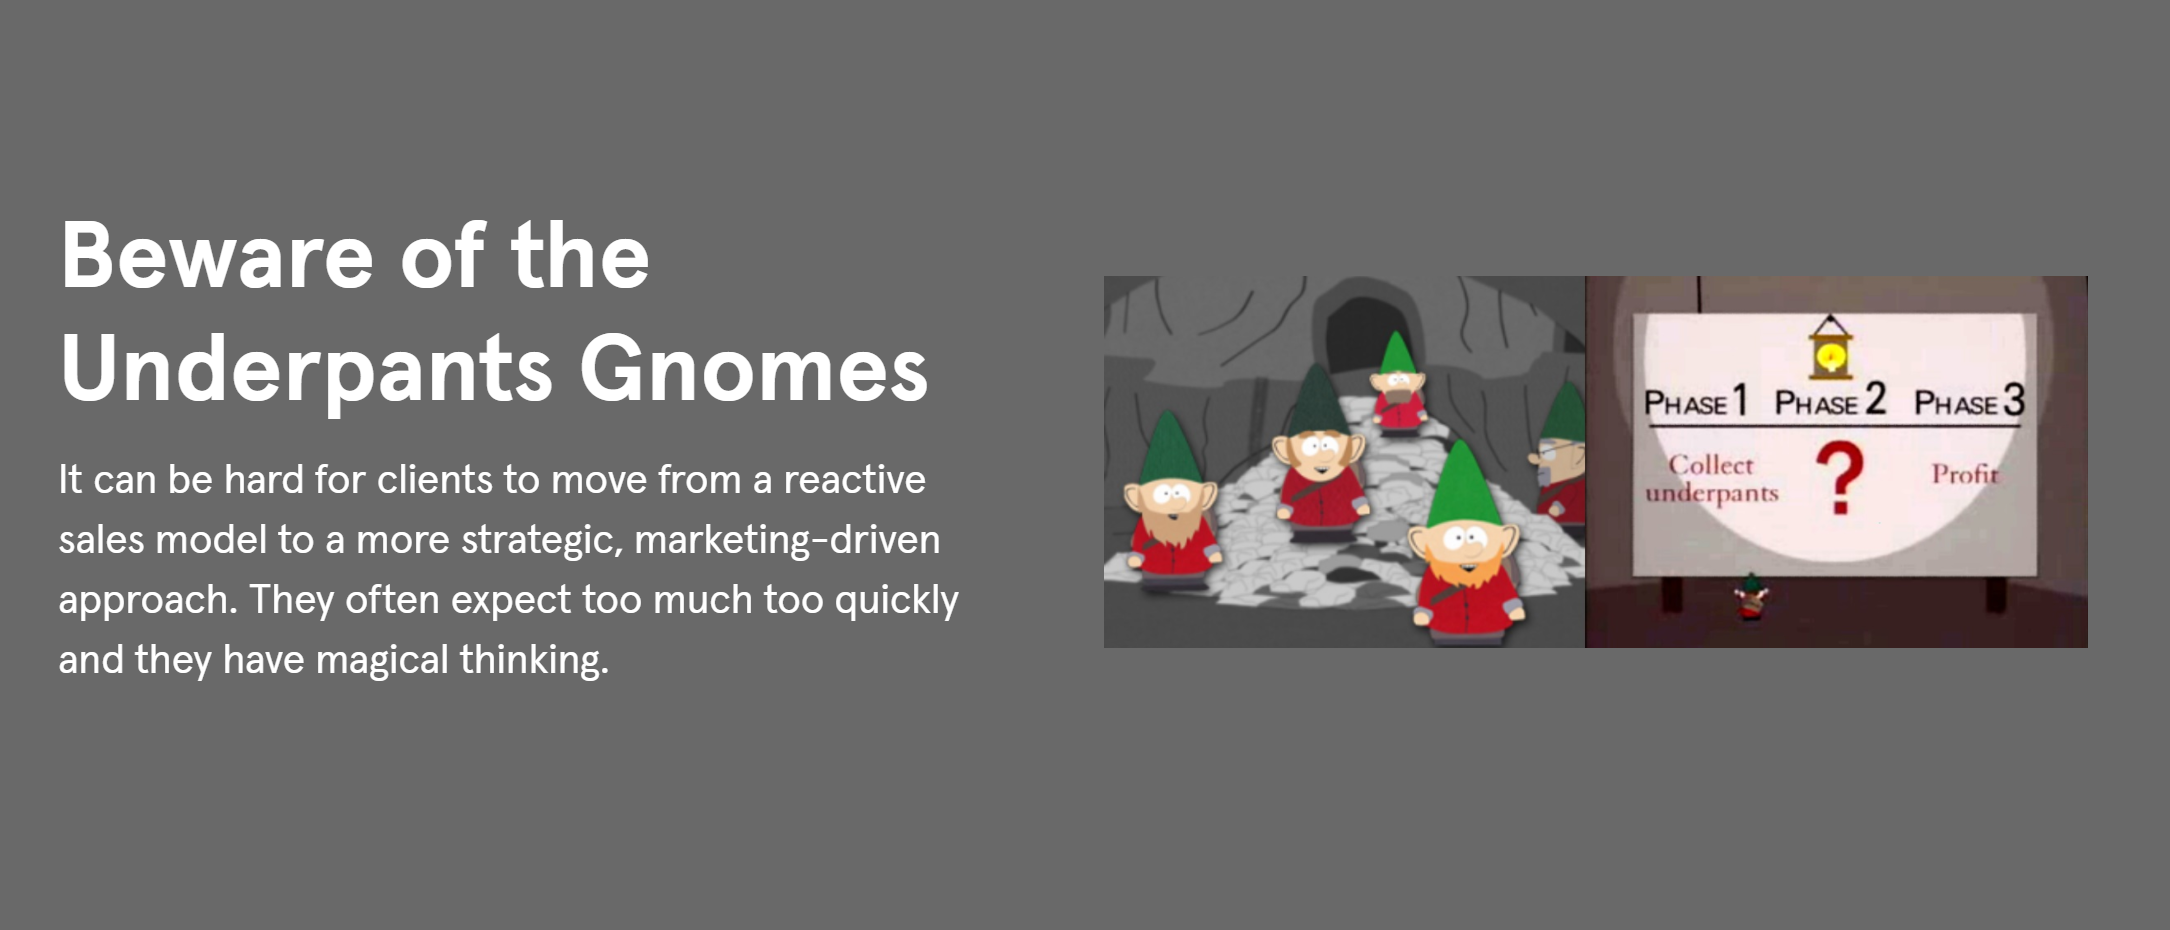 A screenshot of the Underpants Gnomes from South Park, used to show the problem with a non-strategic approach to sales.